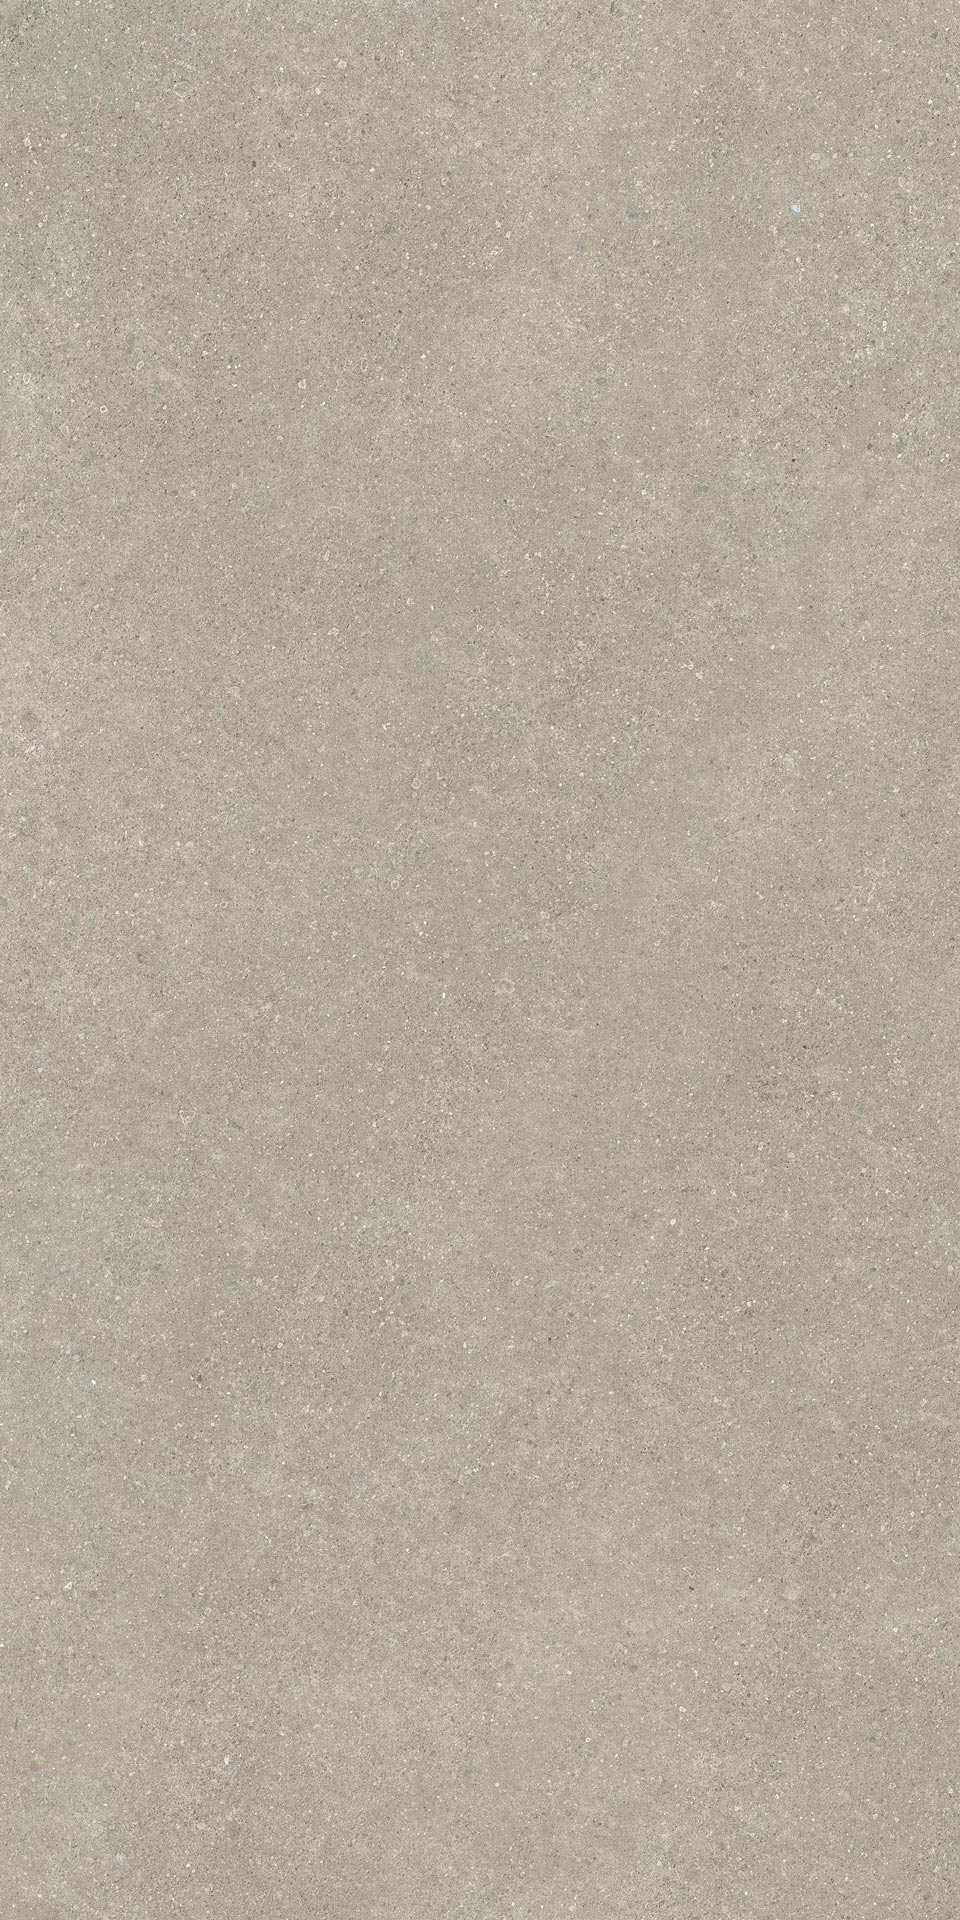 kone-pearl-large-surface-in-porcelain-tile-for-indoors-and-outdoors